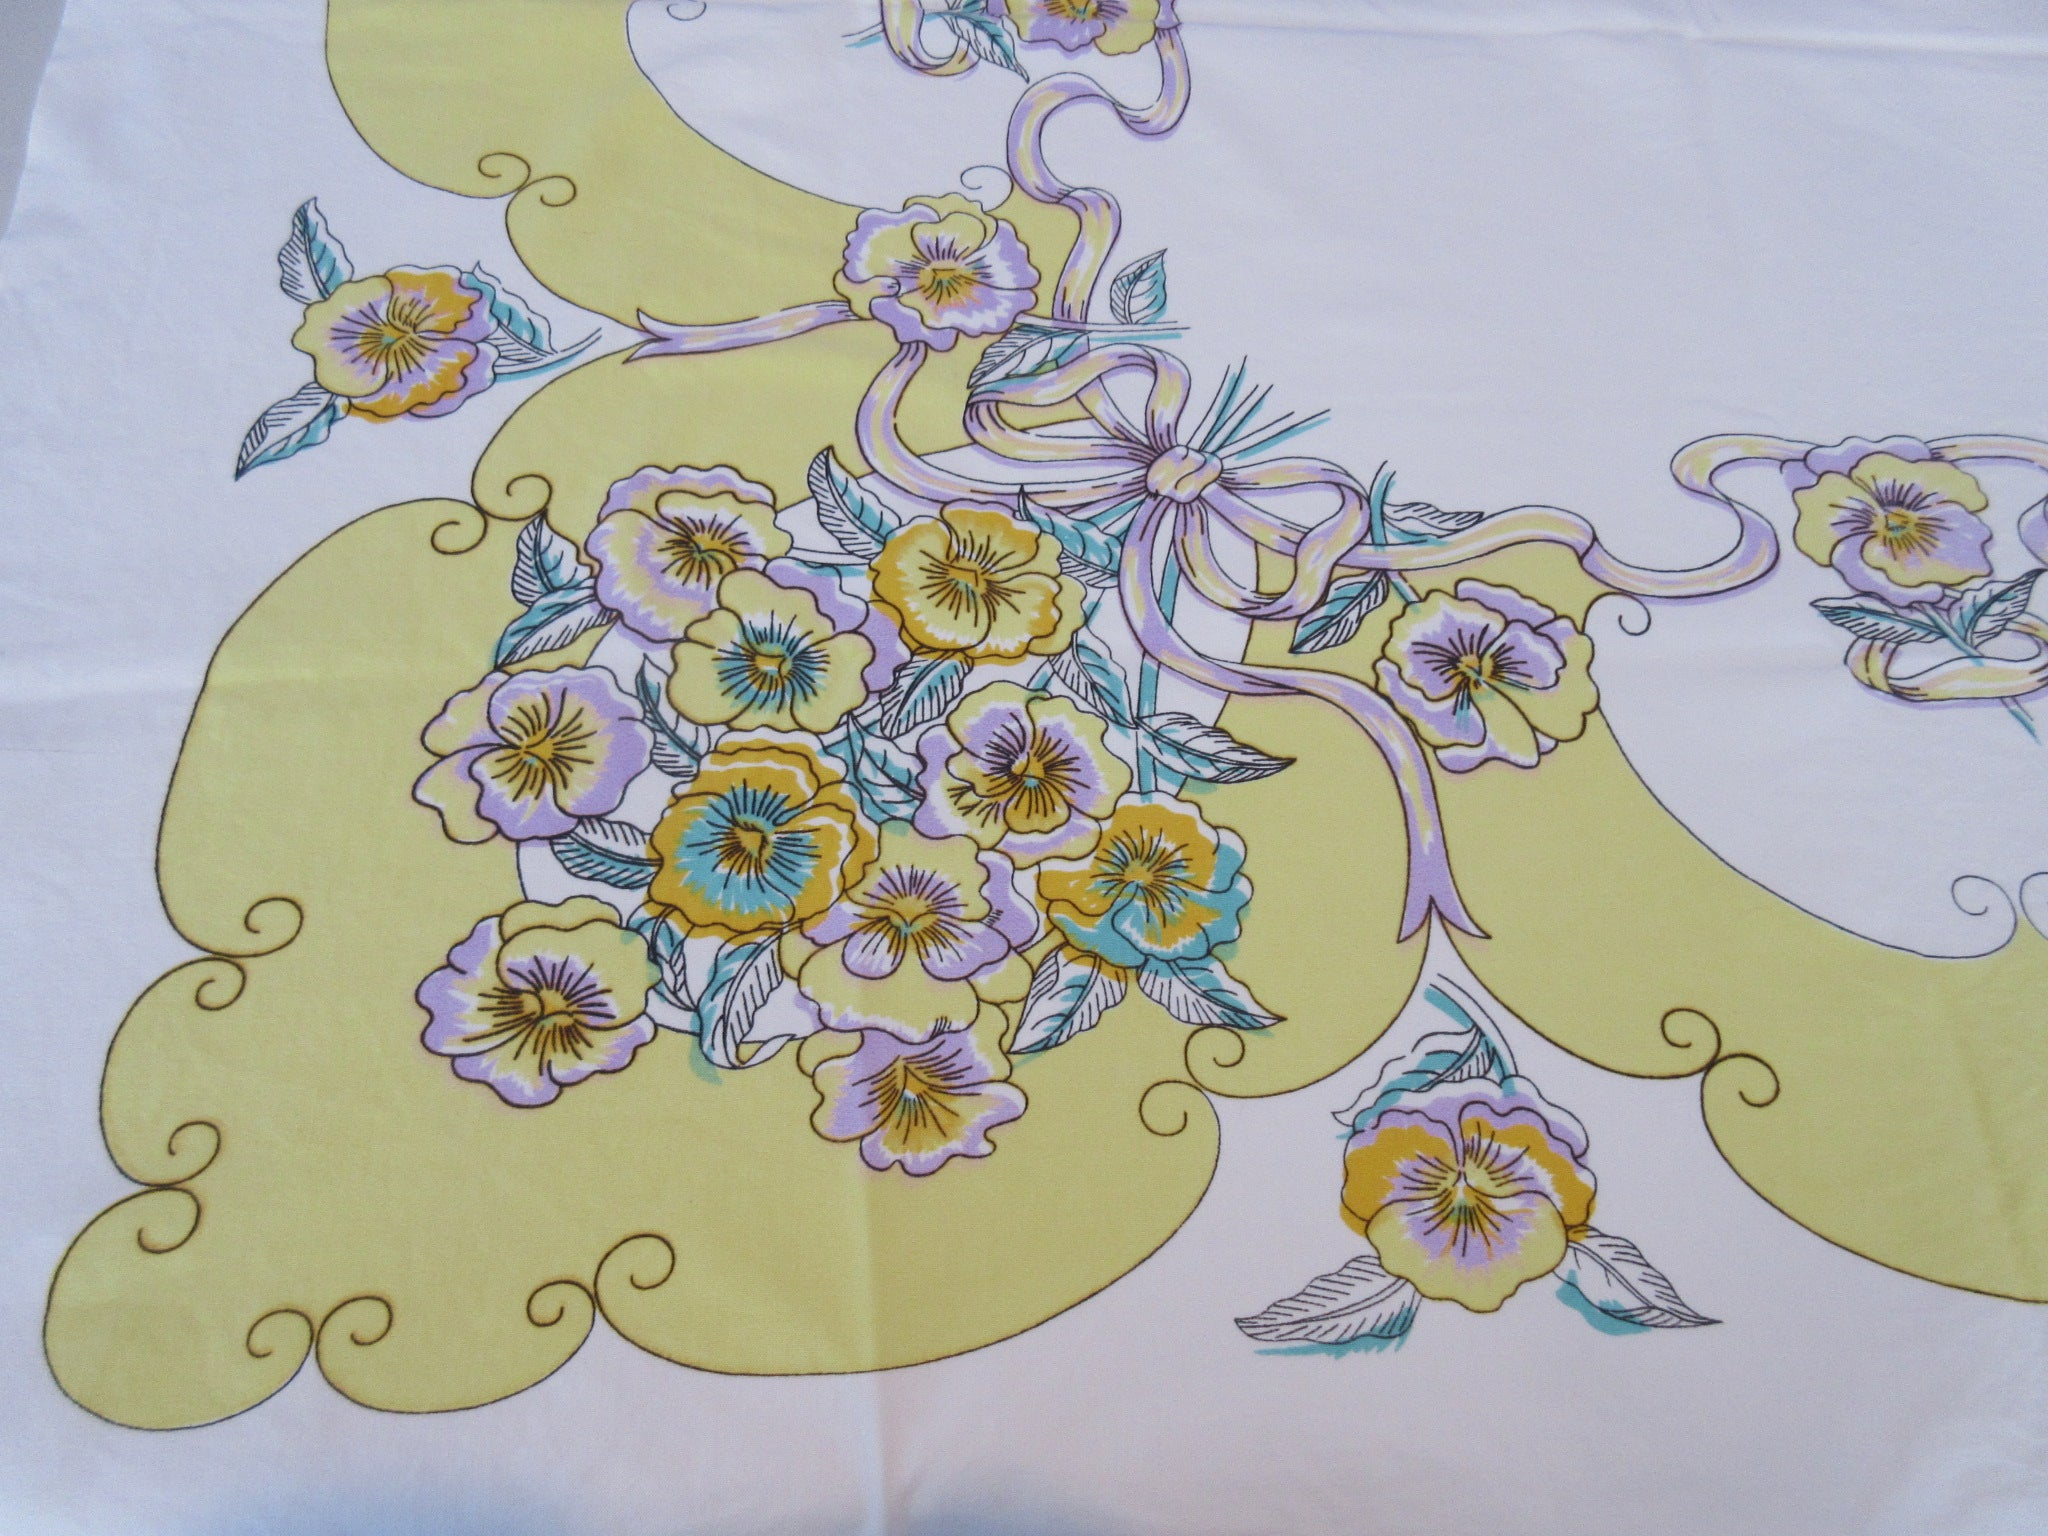 Pastel Pink Pansies Ribbons on Yellow Floral Vintage Printed Tablecloth (50 X 45)